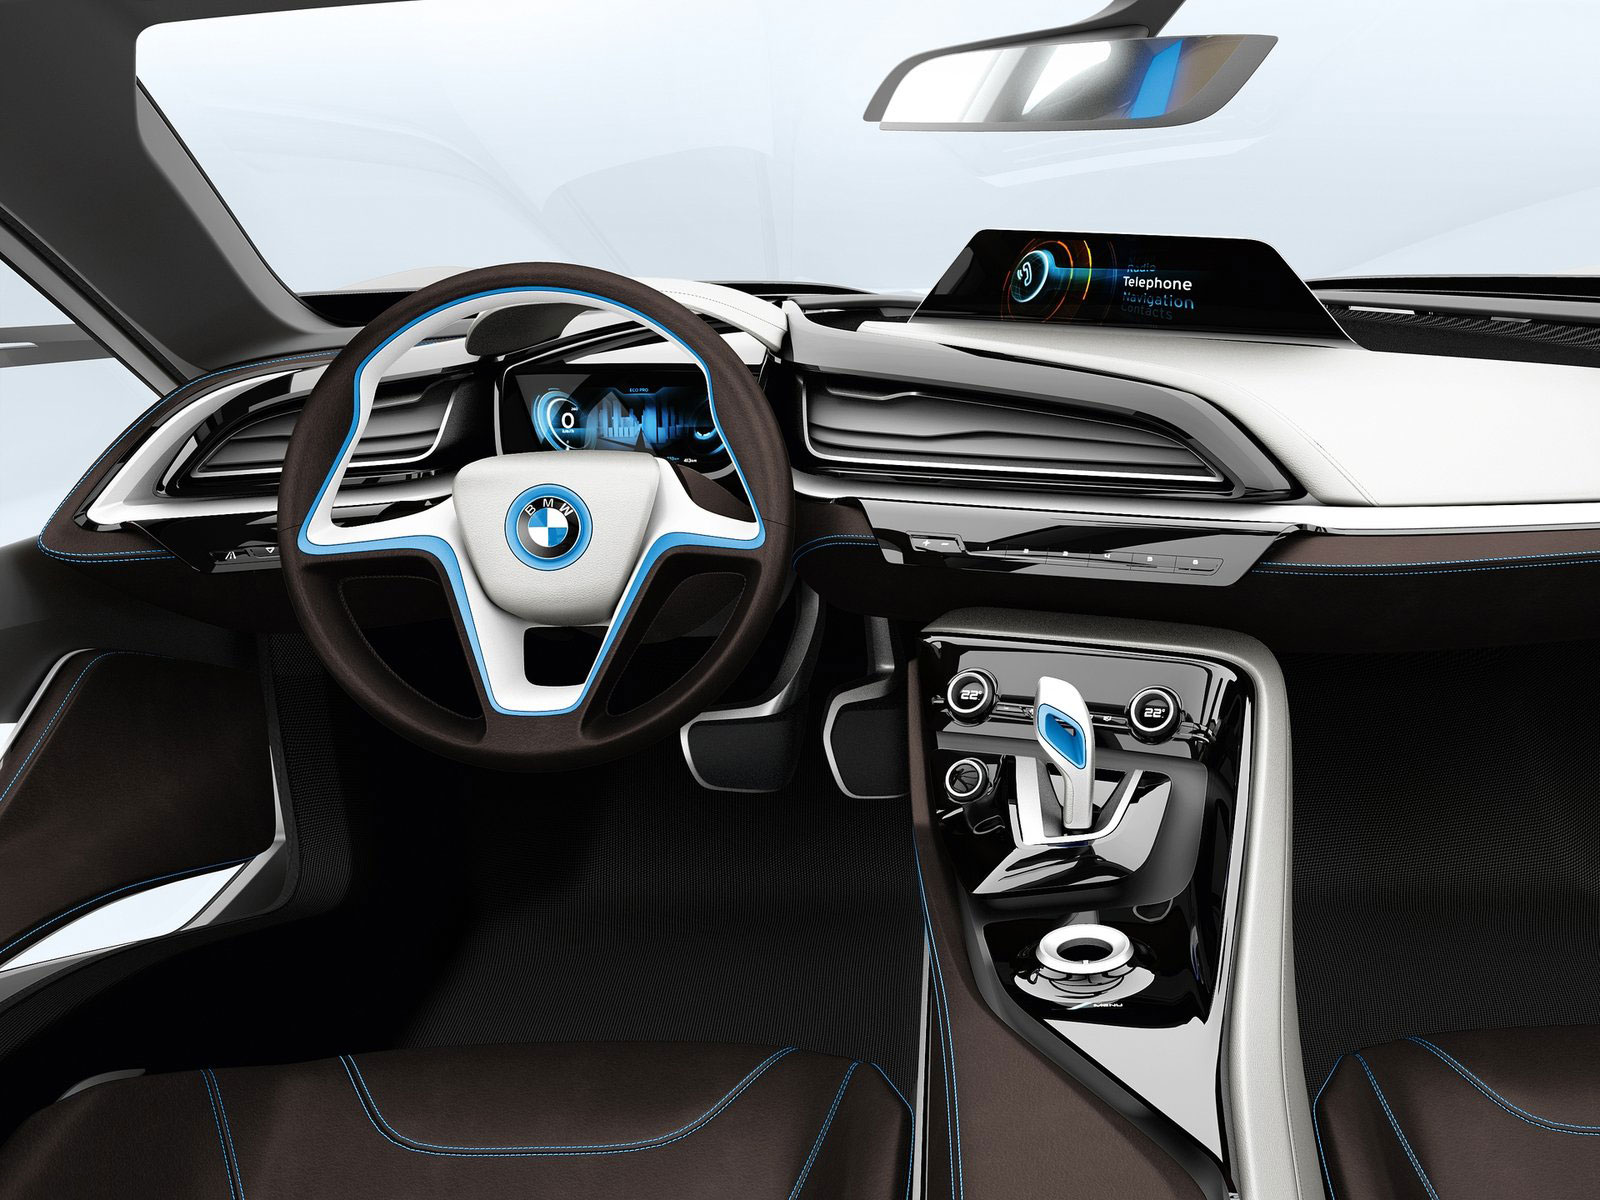 2011 Bmw I8 Concept Interior Car Body Design